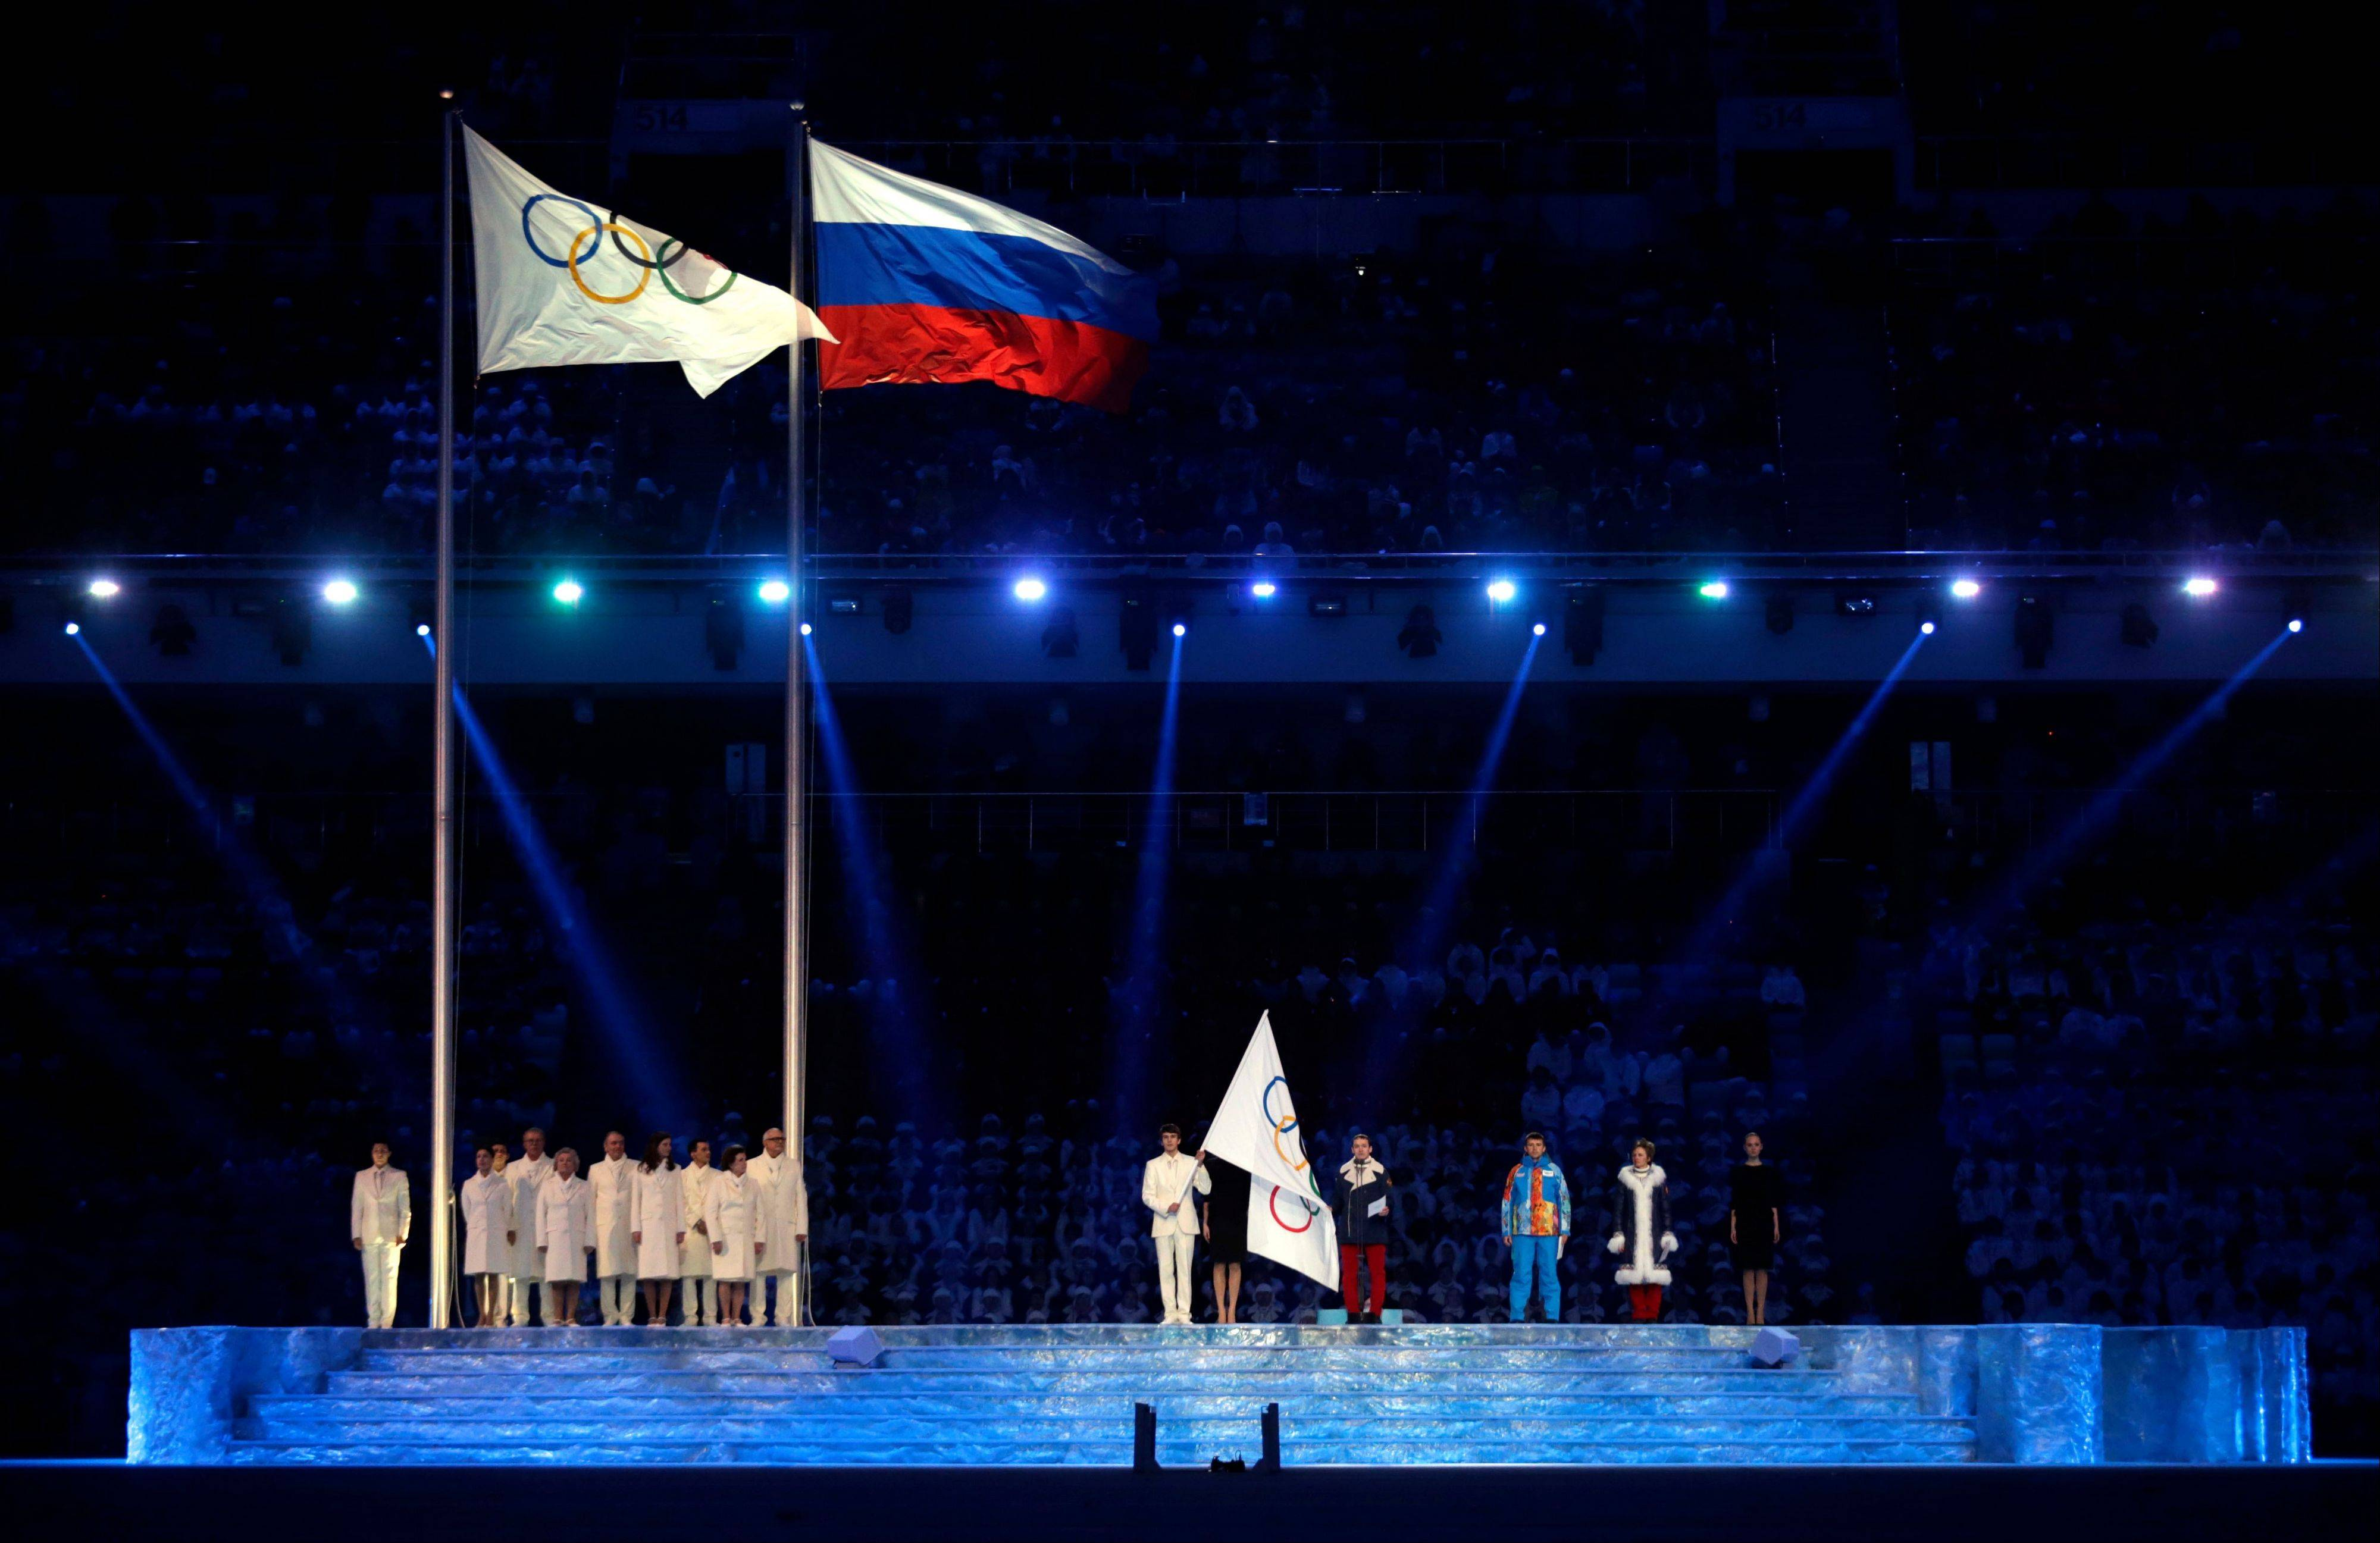 The Olympic and the Russian flags wave during the opening ceremony.